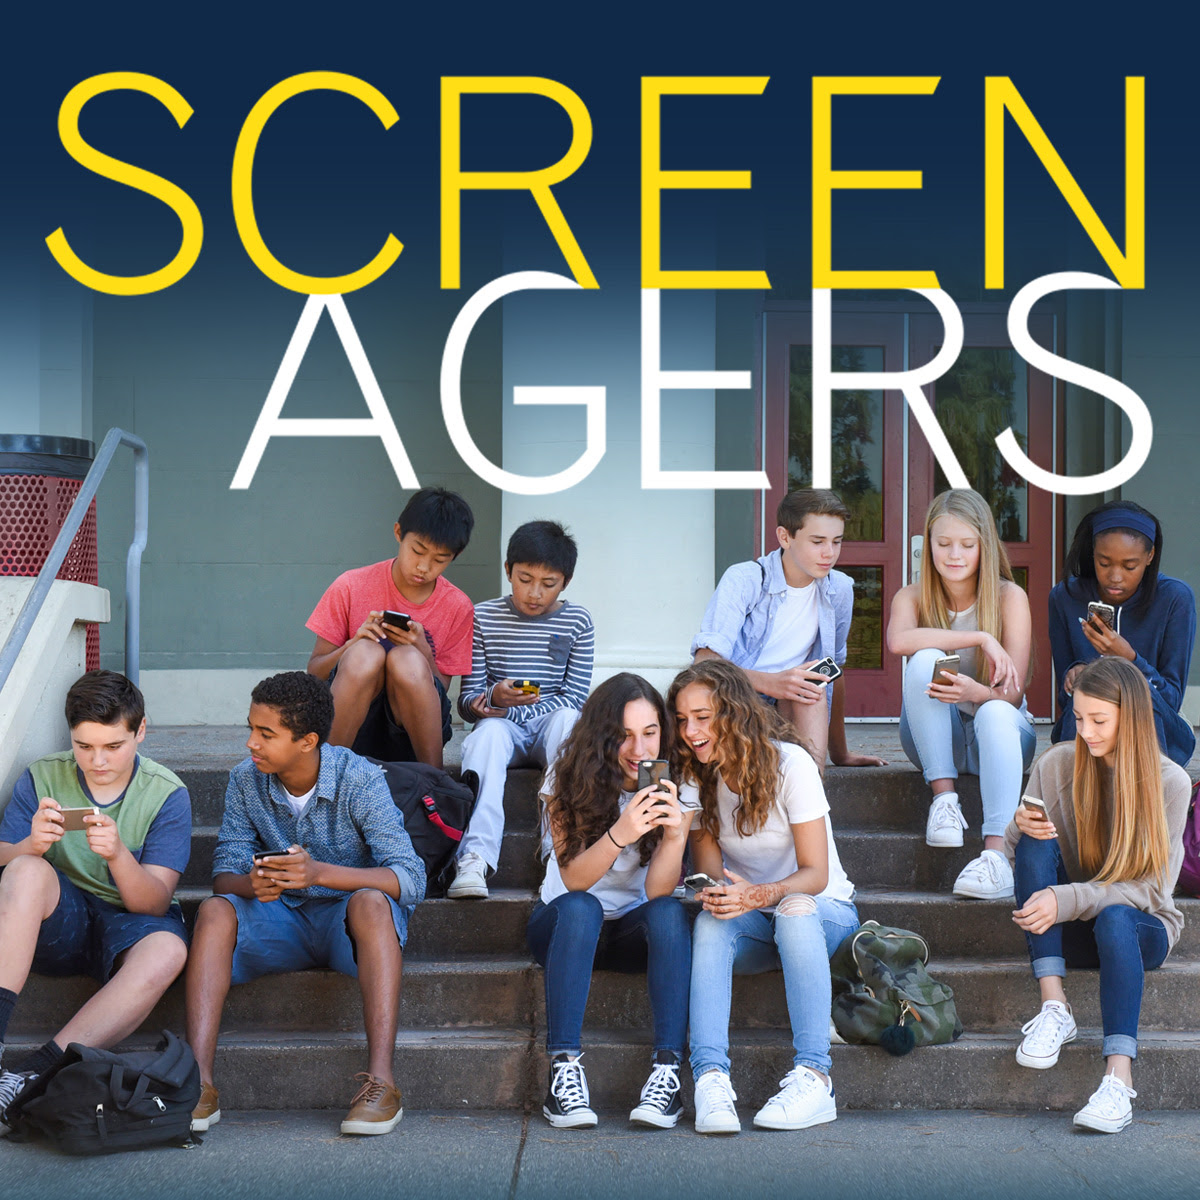 Screenagers Film Presented By The Charlotte Church